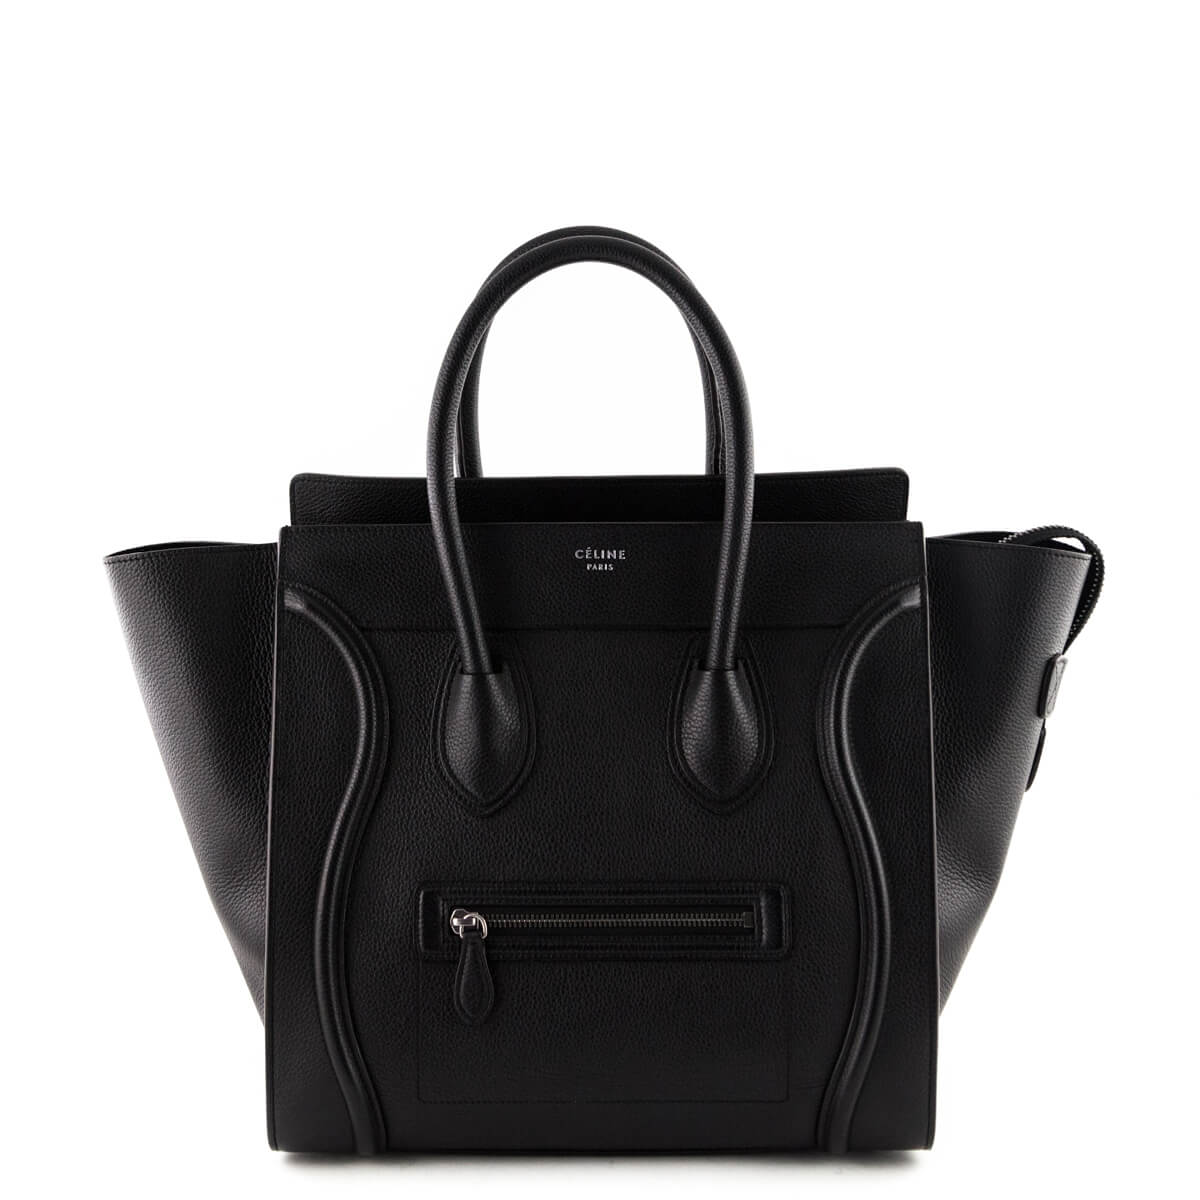 d0c2ffd932 Celine Black Calfskin Mini Luggage Tote - LOVE that BAG - Preowned Authentic  Designer Handbags ...